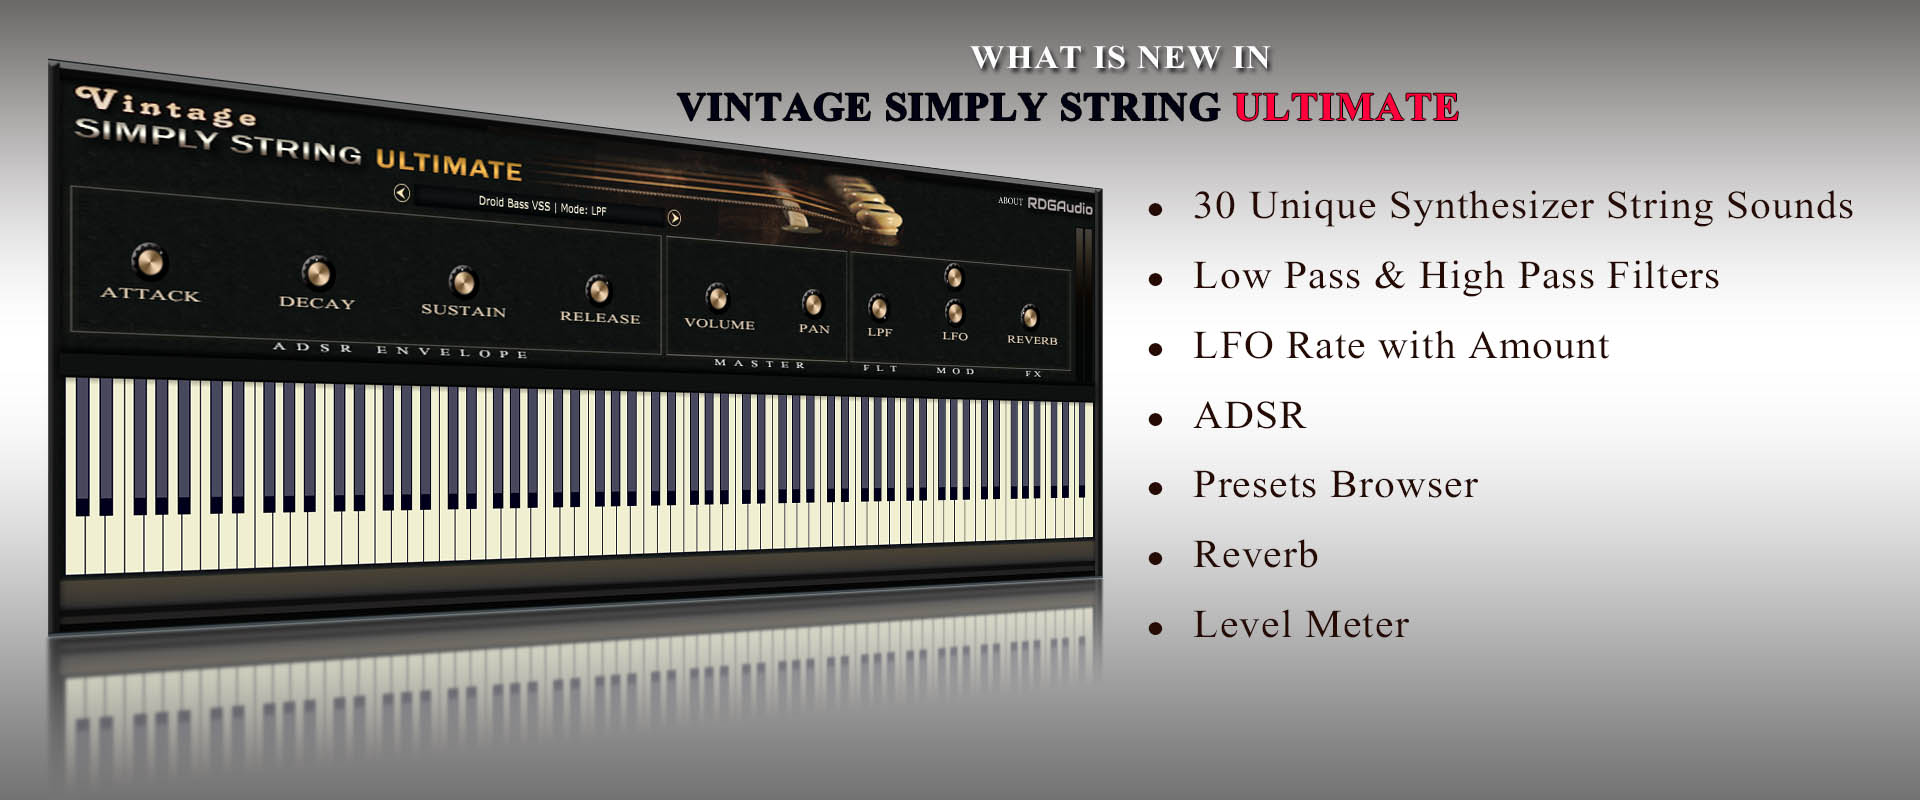 Vintage Simply String Ultimate Features